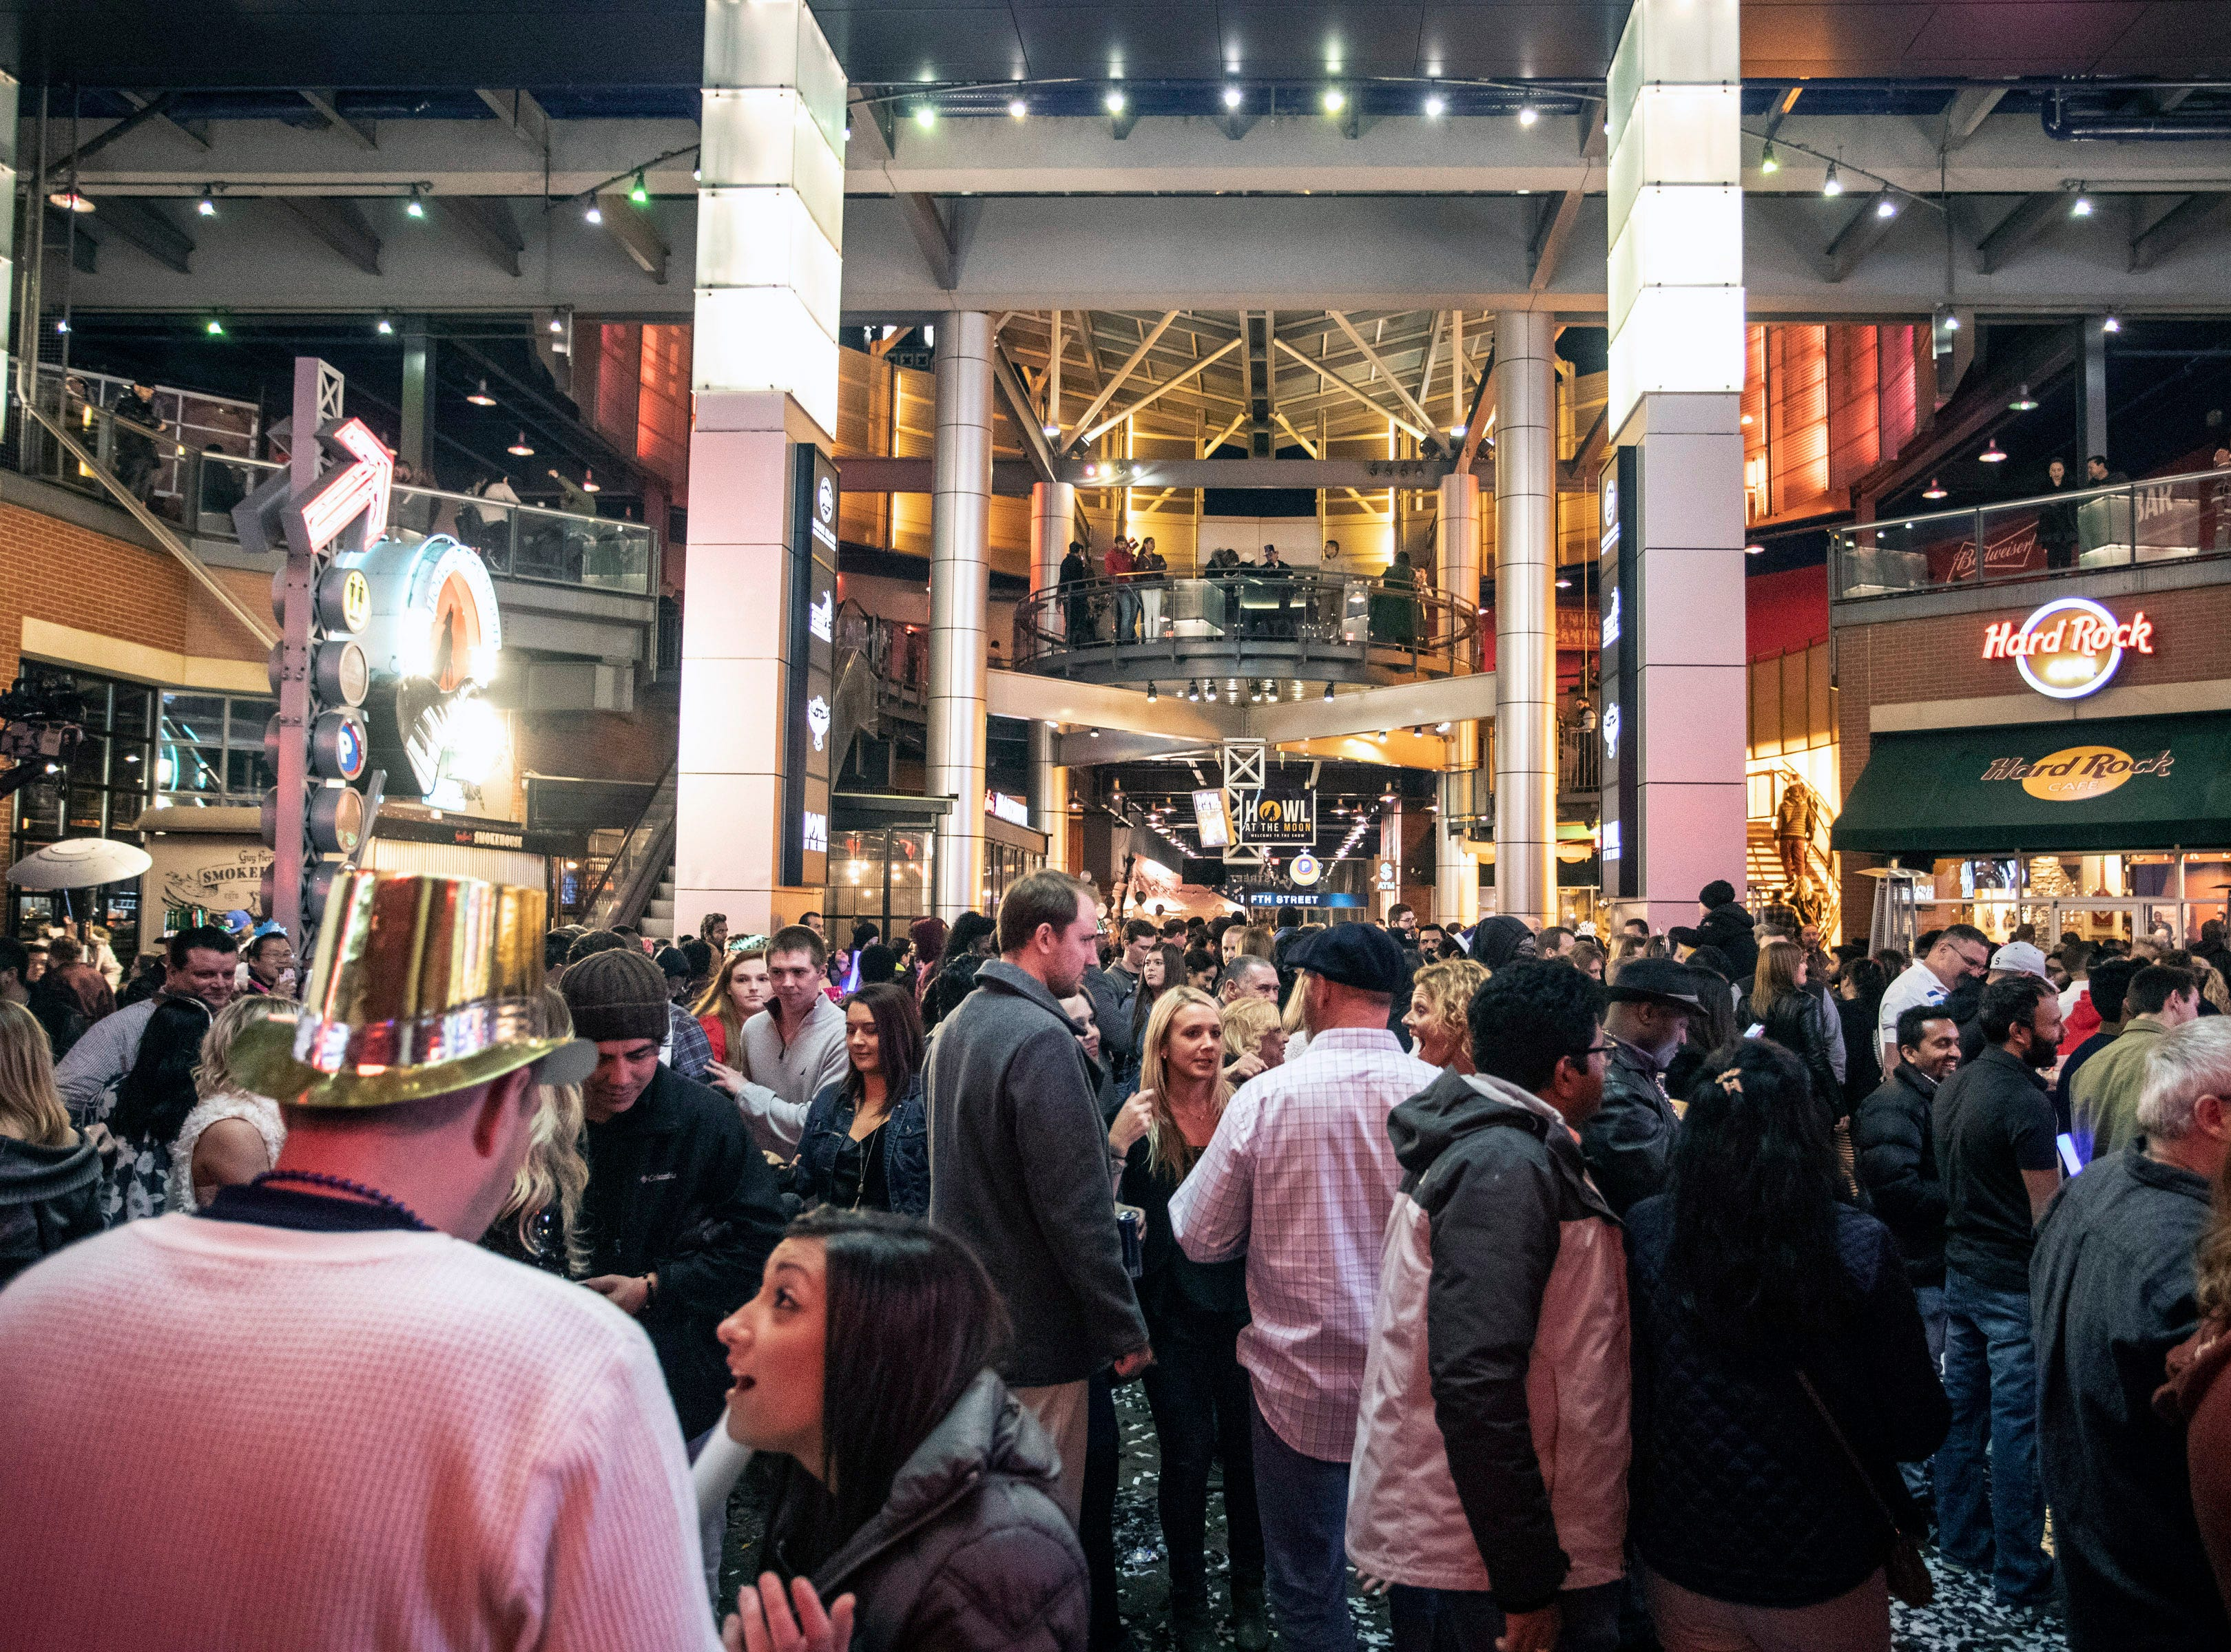 Fourth Street Live was packed with revelers ready to ring in the new year on Monday night. December 31, 2018.